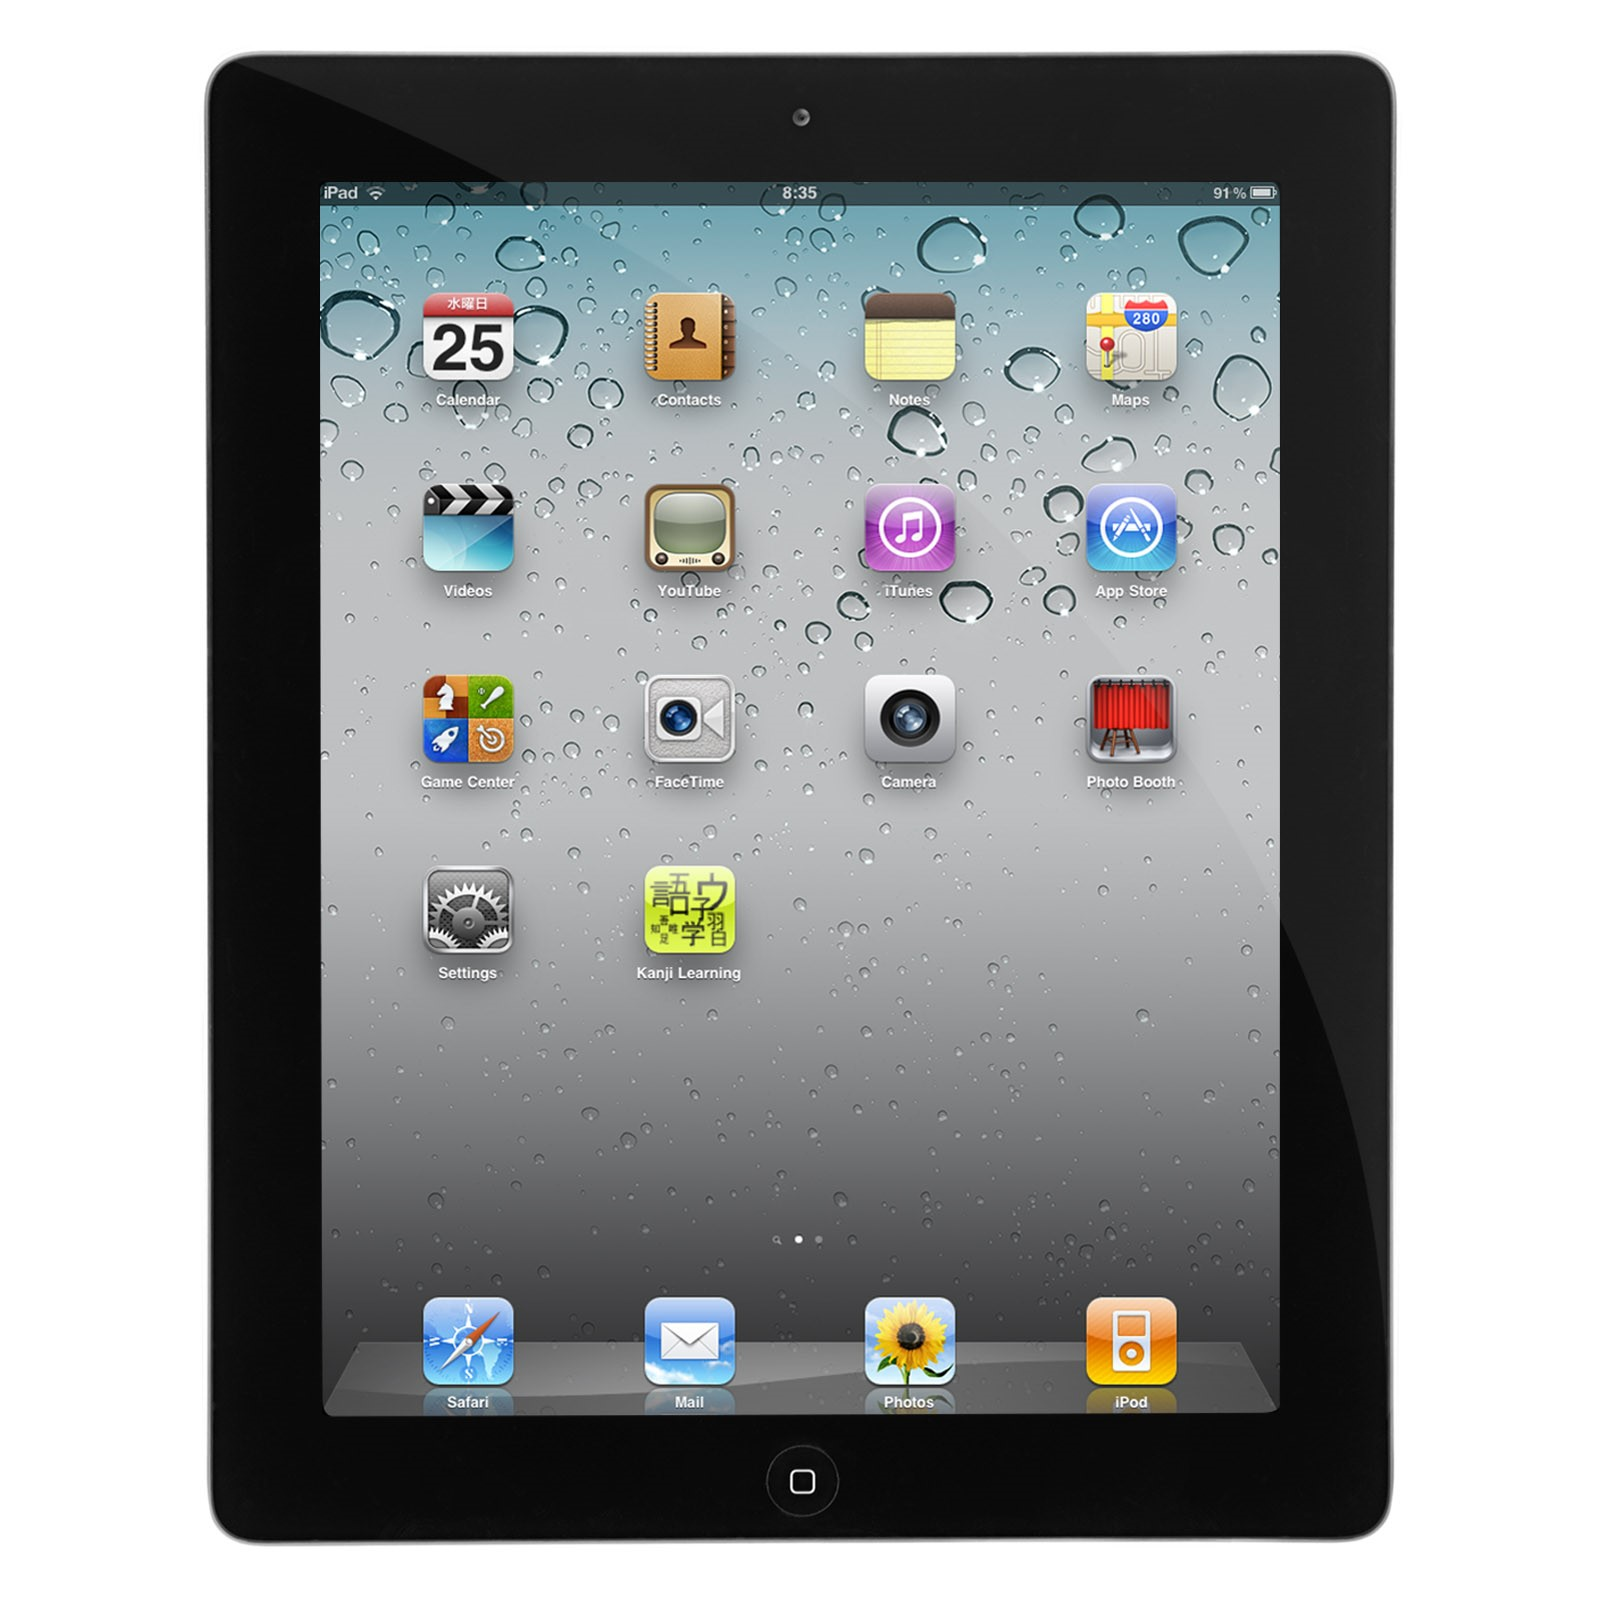 Apple iPad 2 Tablet 16GB  - Black (Certified Refurbished)